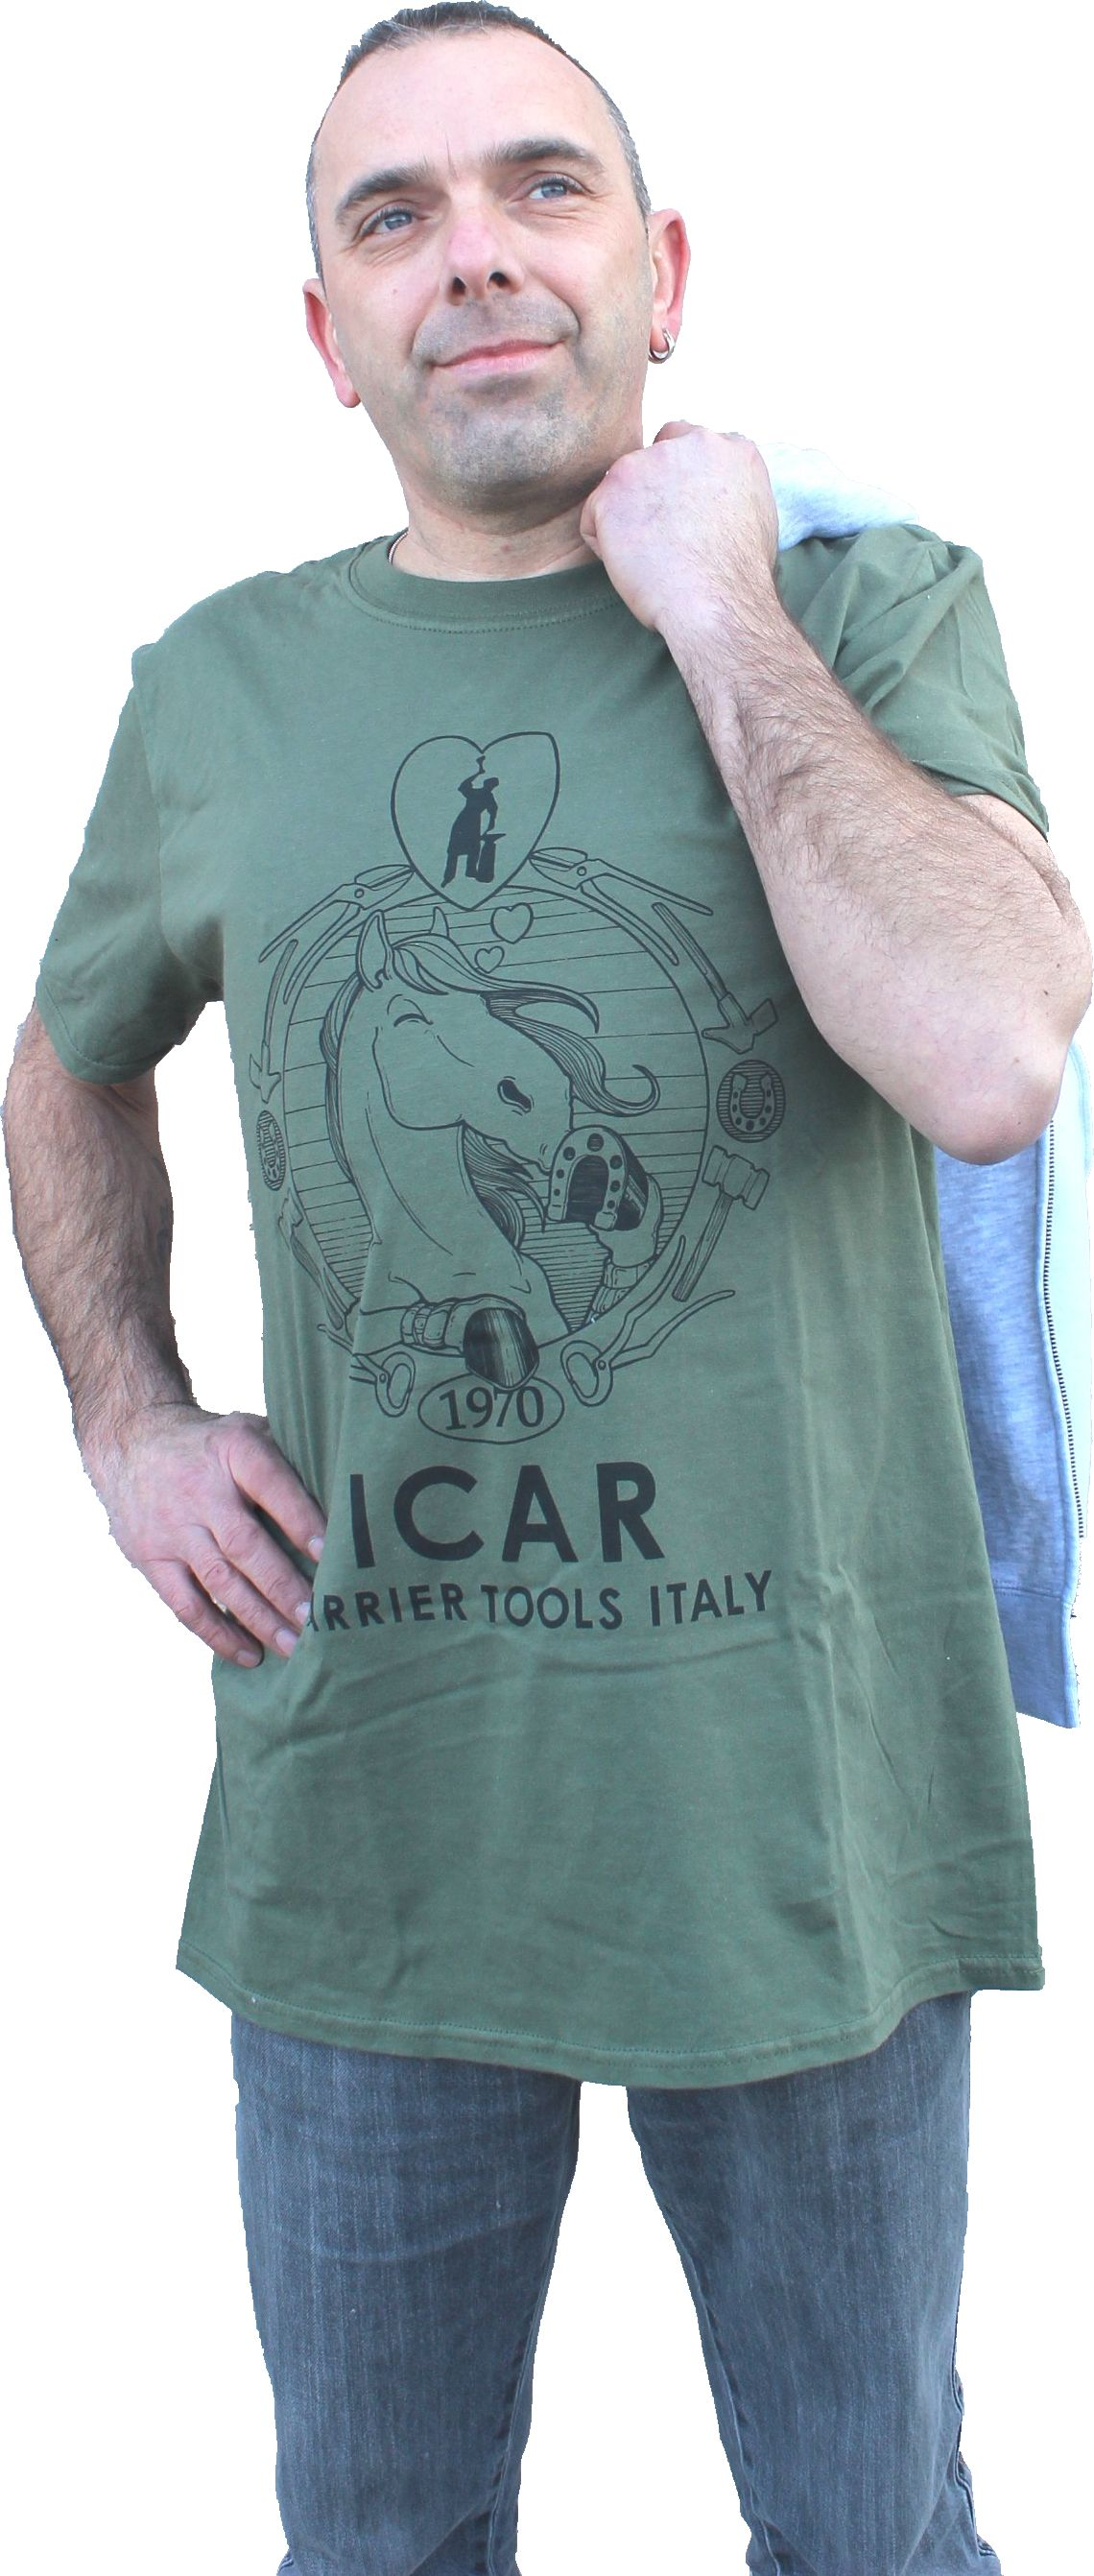 icar product image